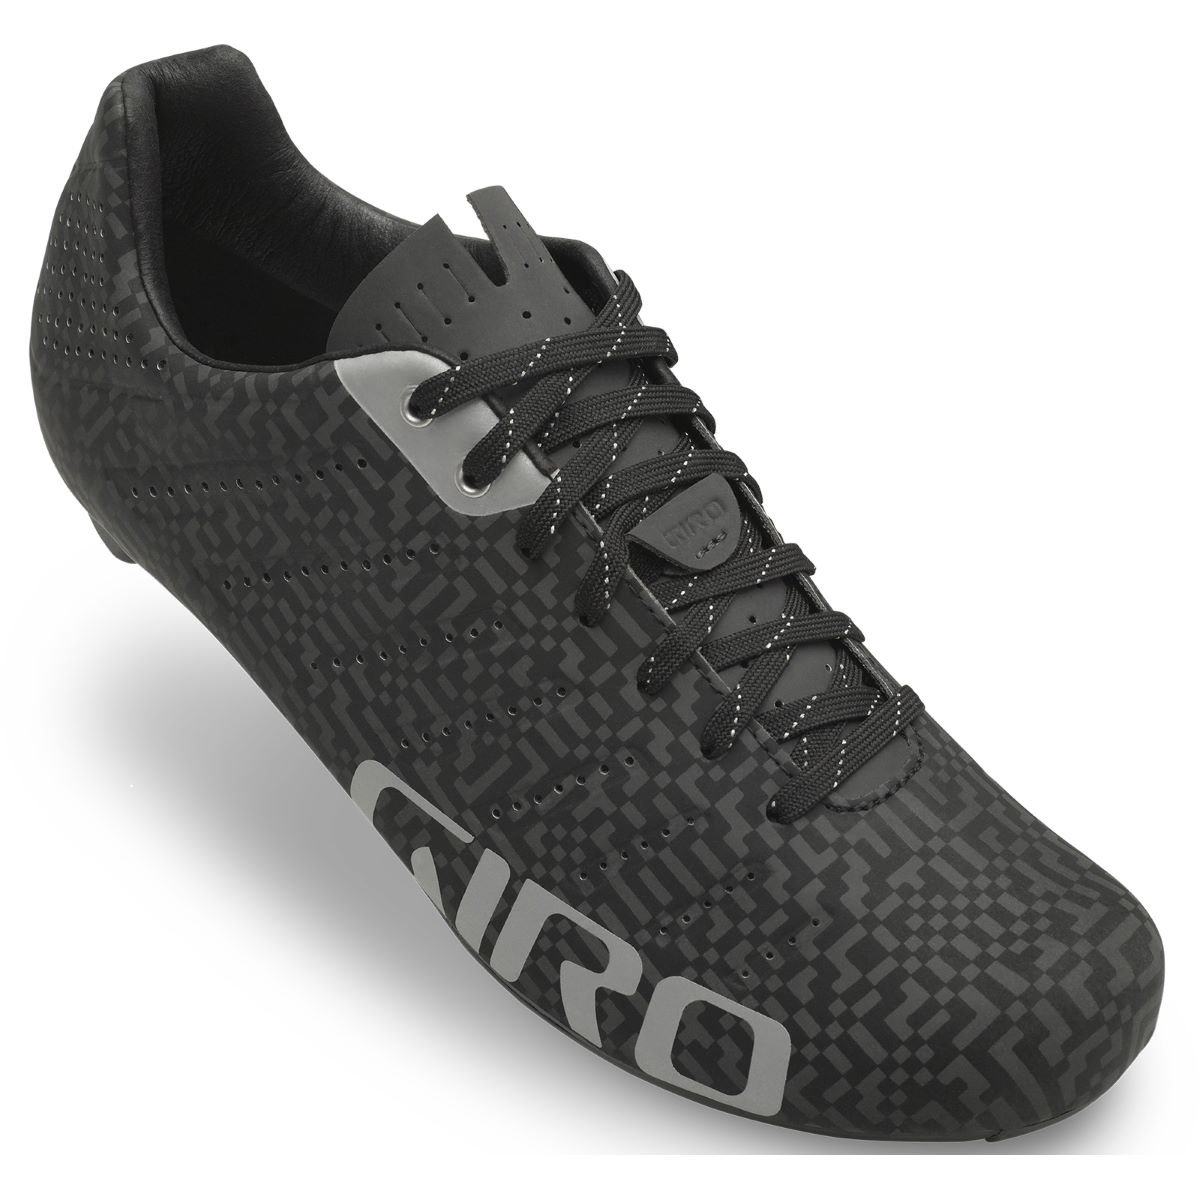 Giro Giro Empire SLX Reflective Road Shoes (Exclusive)   Cycling Shoes